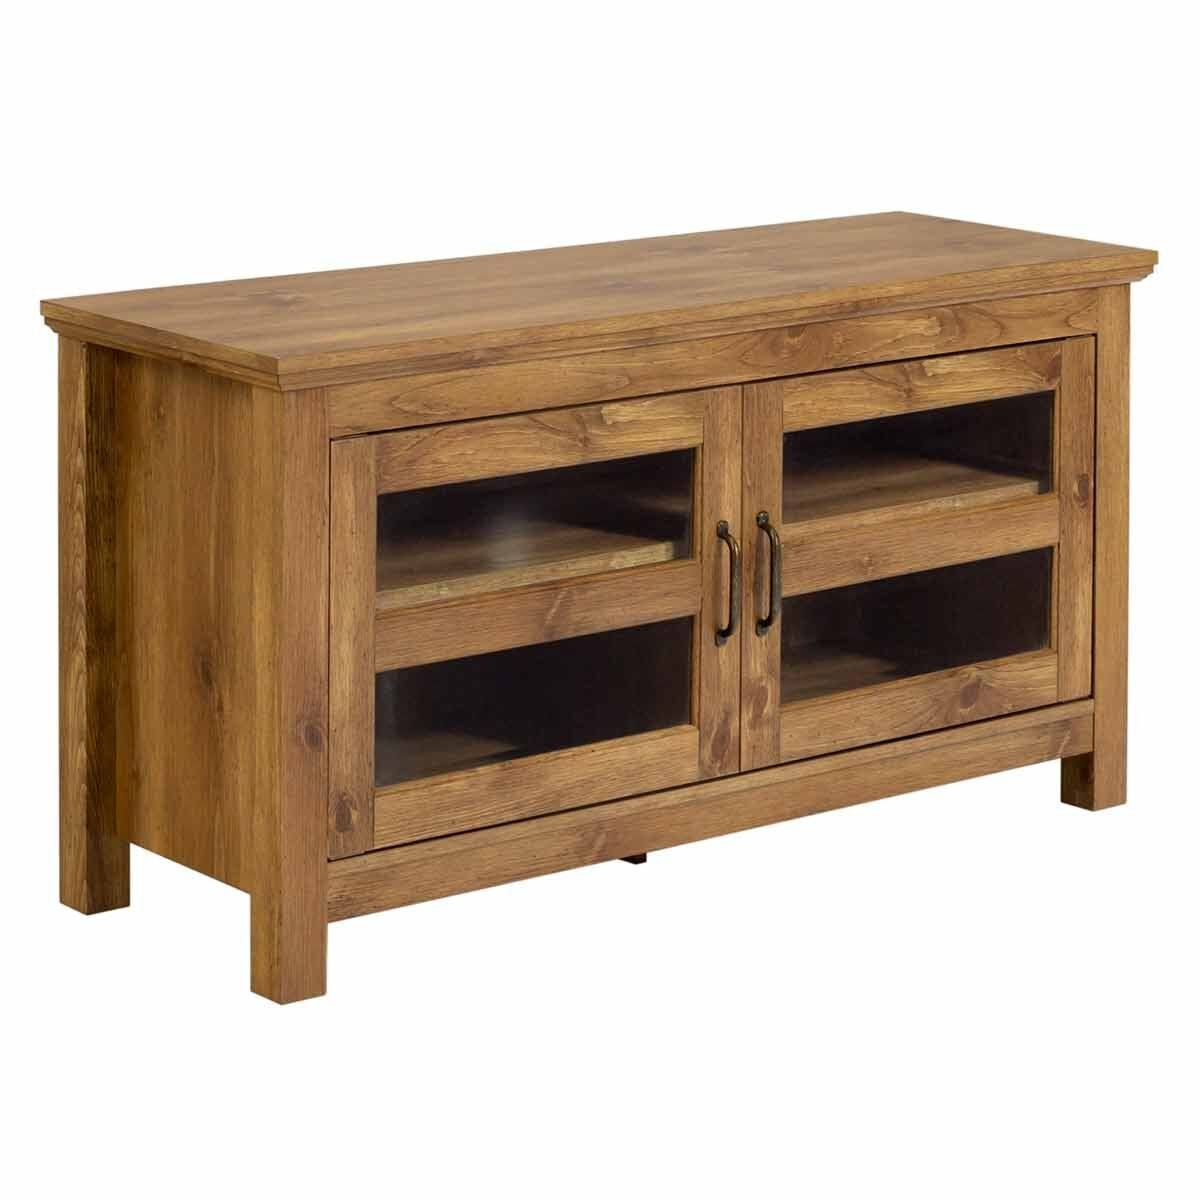 Carpi Wooden TV Stand